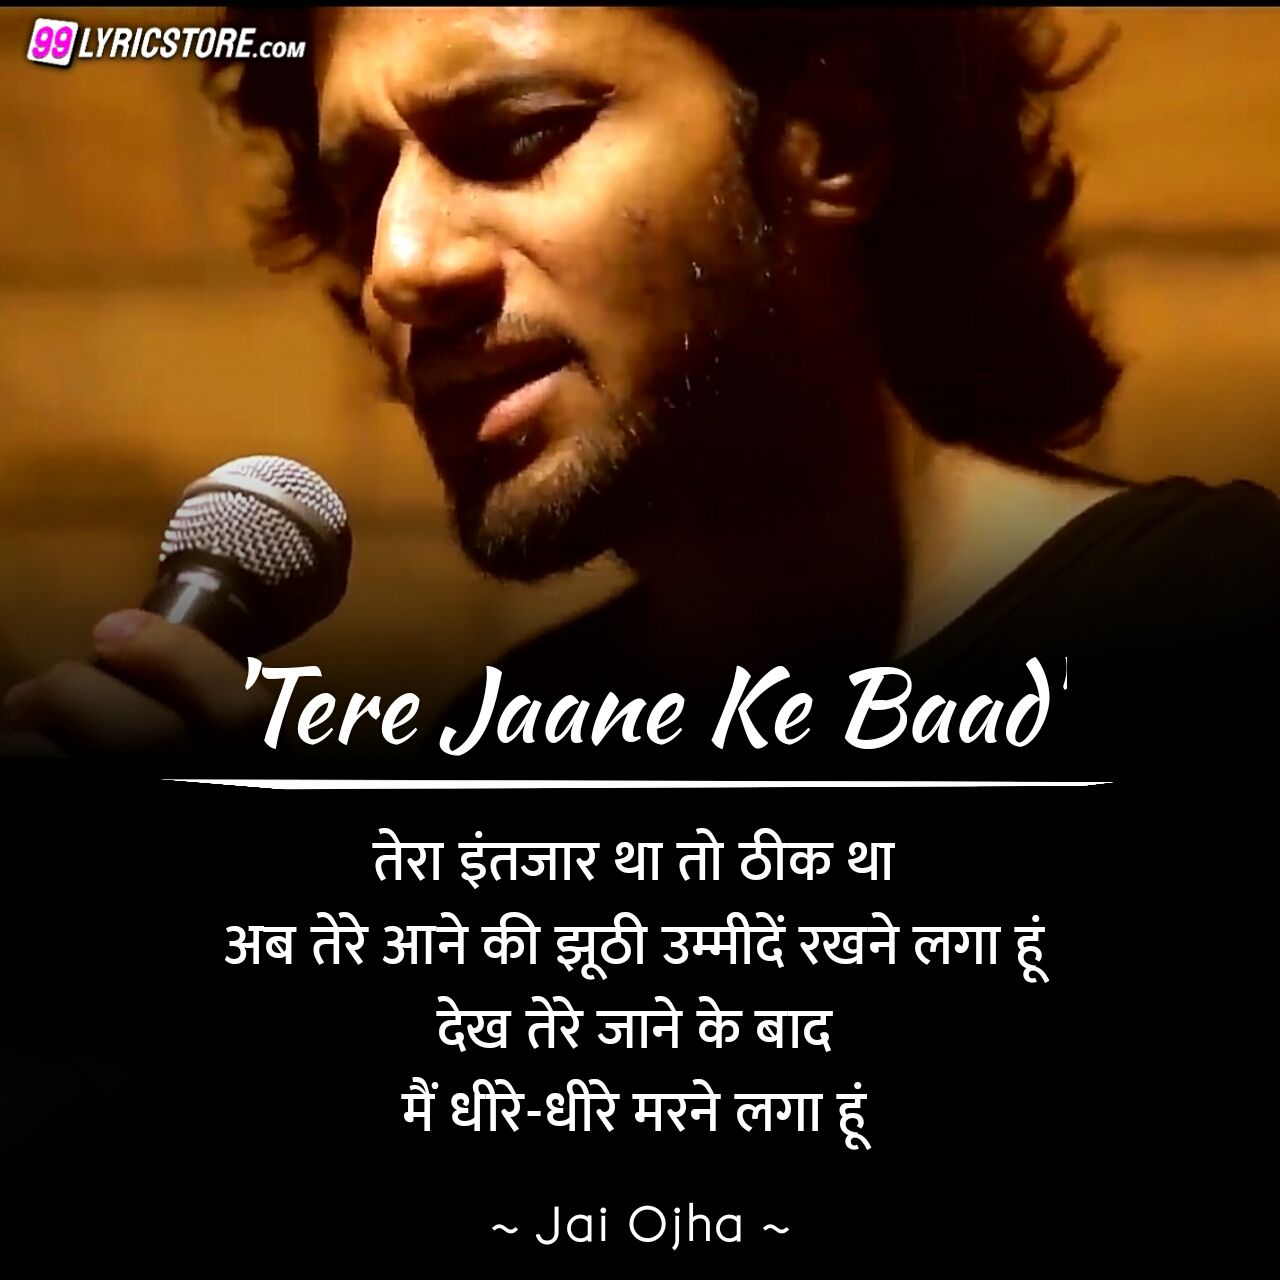 Tere Jaane Ke Baad Hindi Sad Poetry Performed and written by Jai Ojha